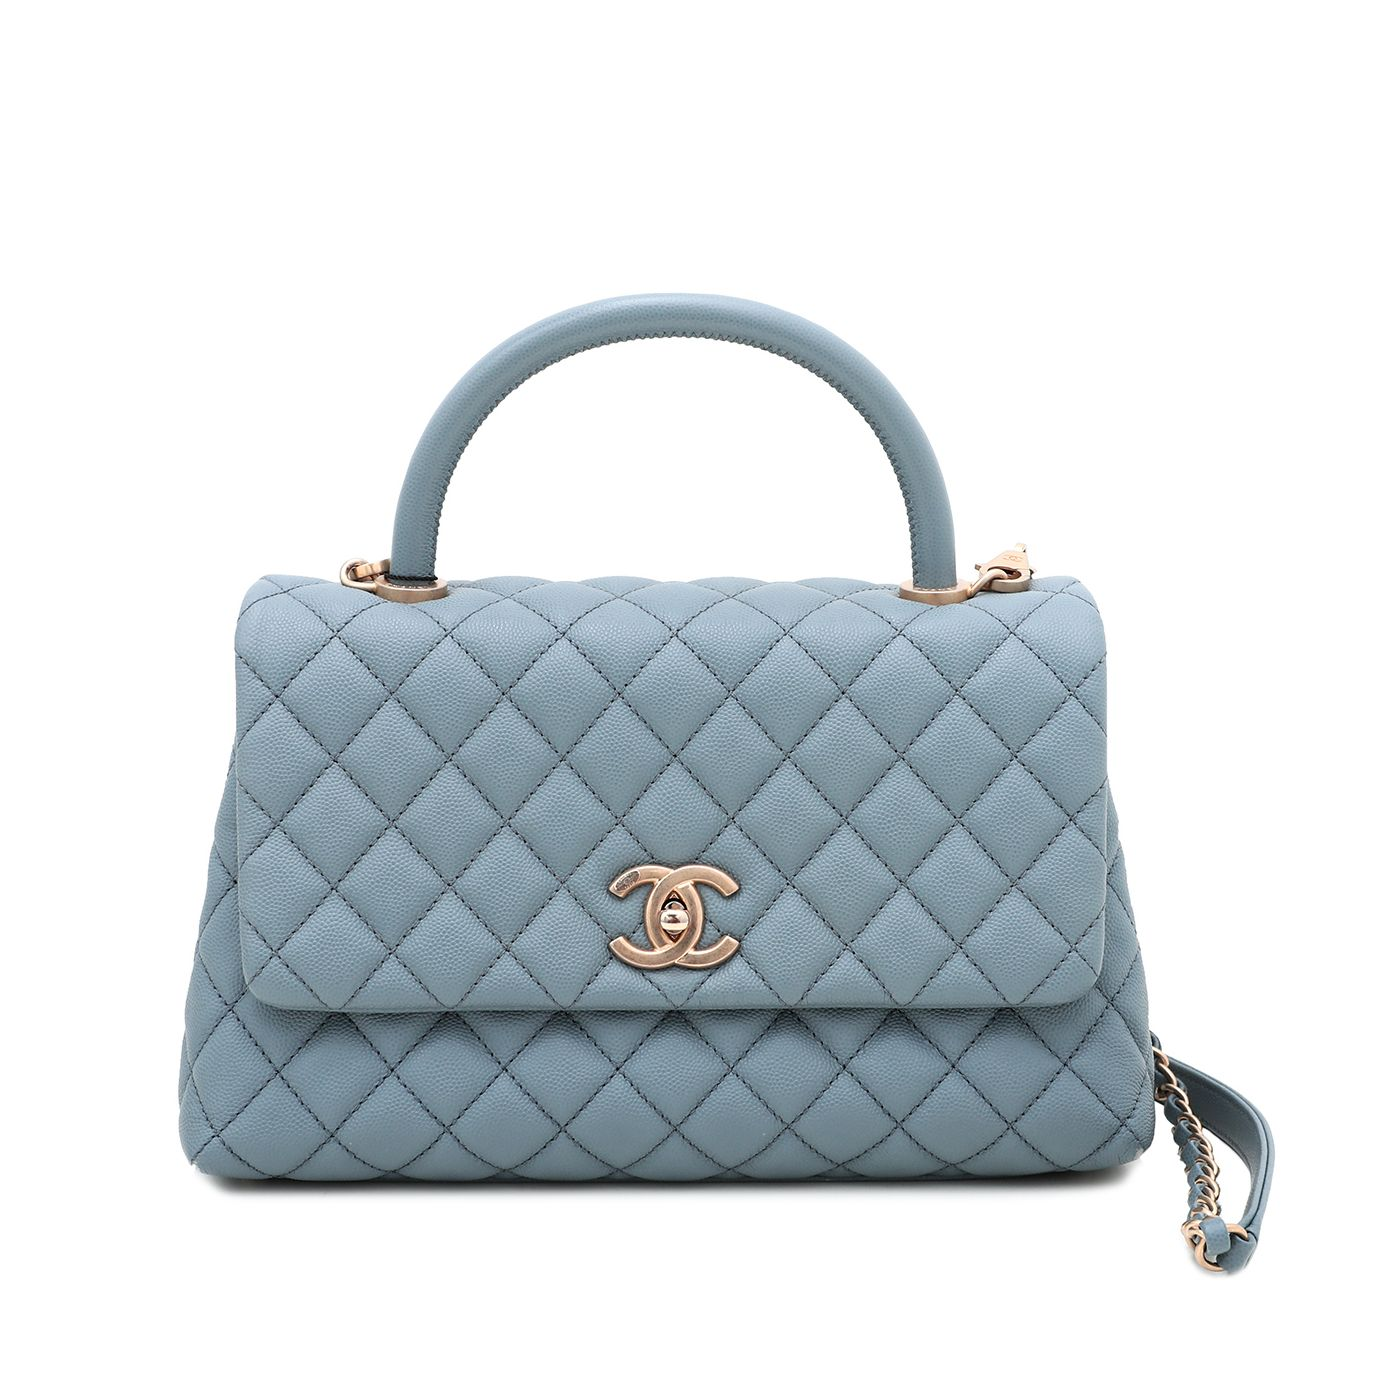 Chanel Light Blue Coco Handle Bag Small